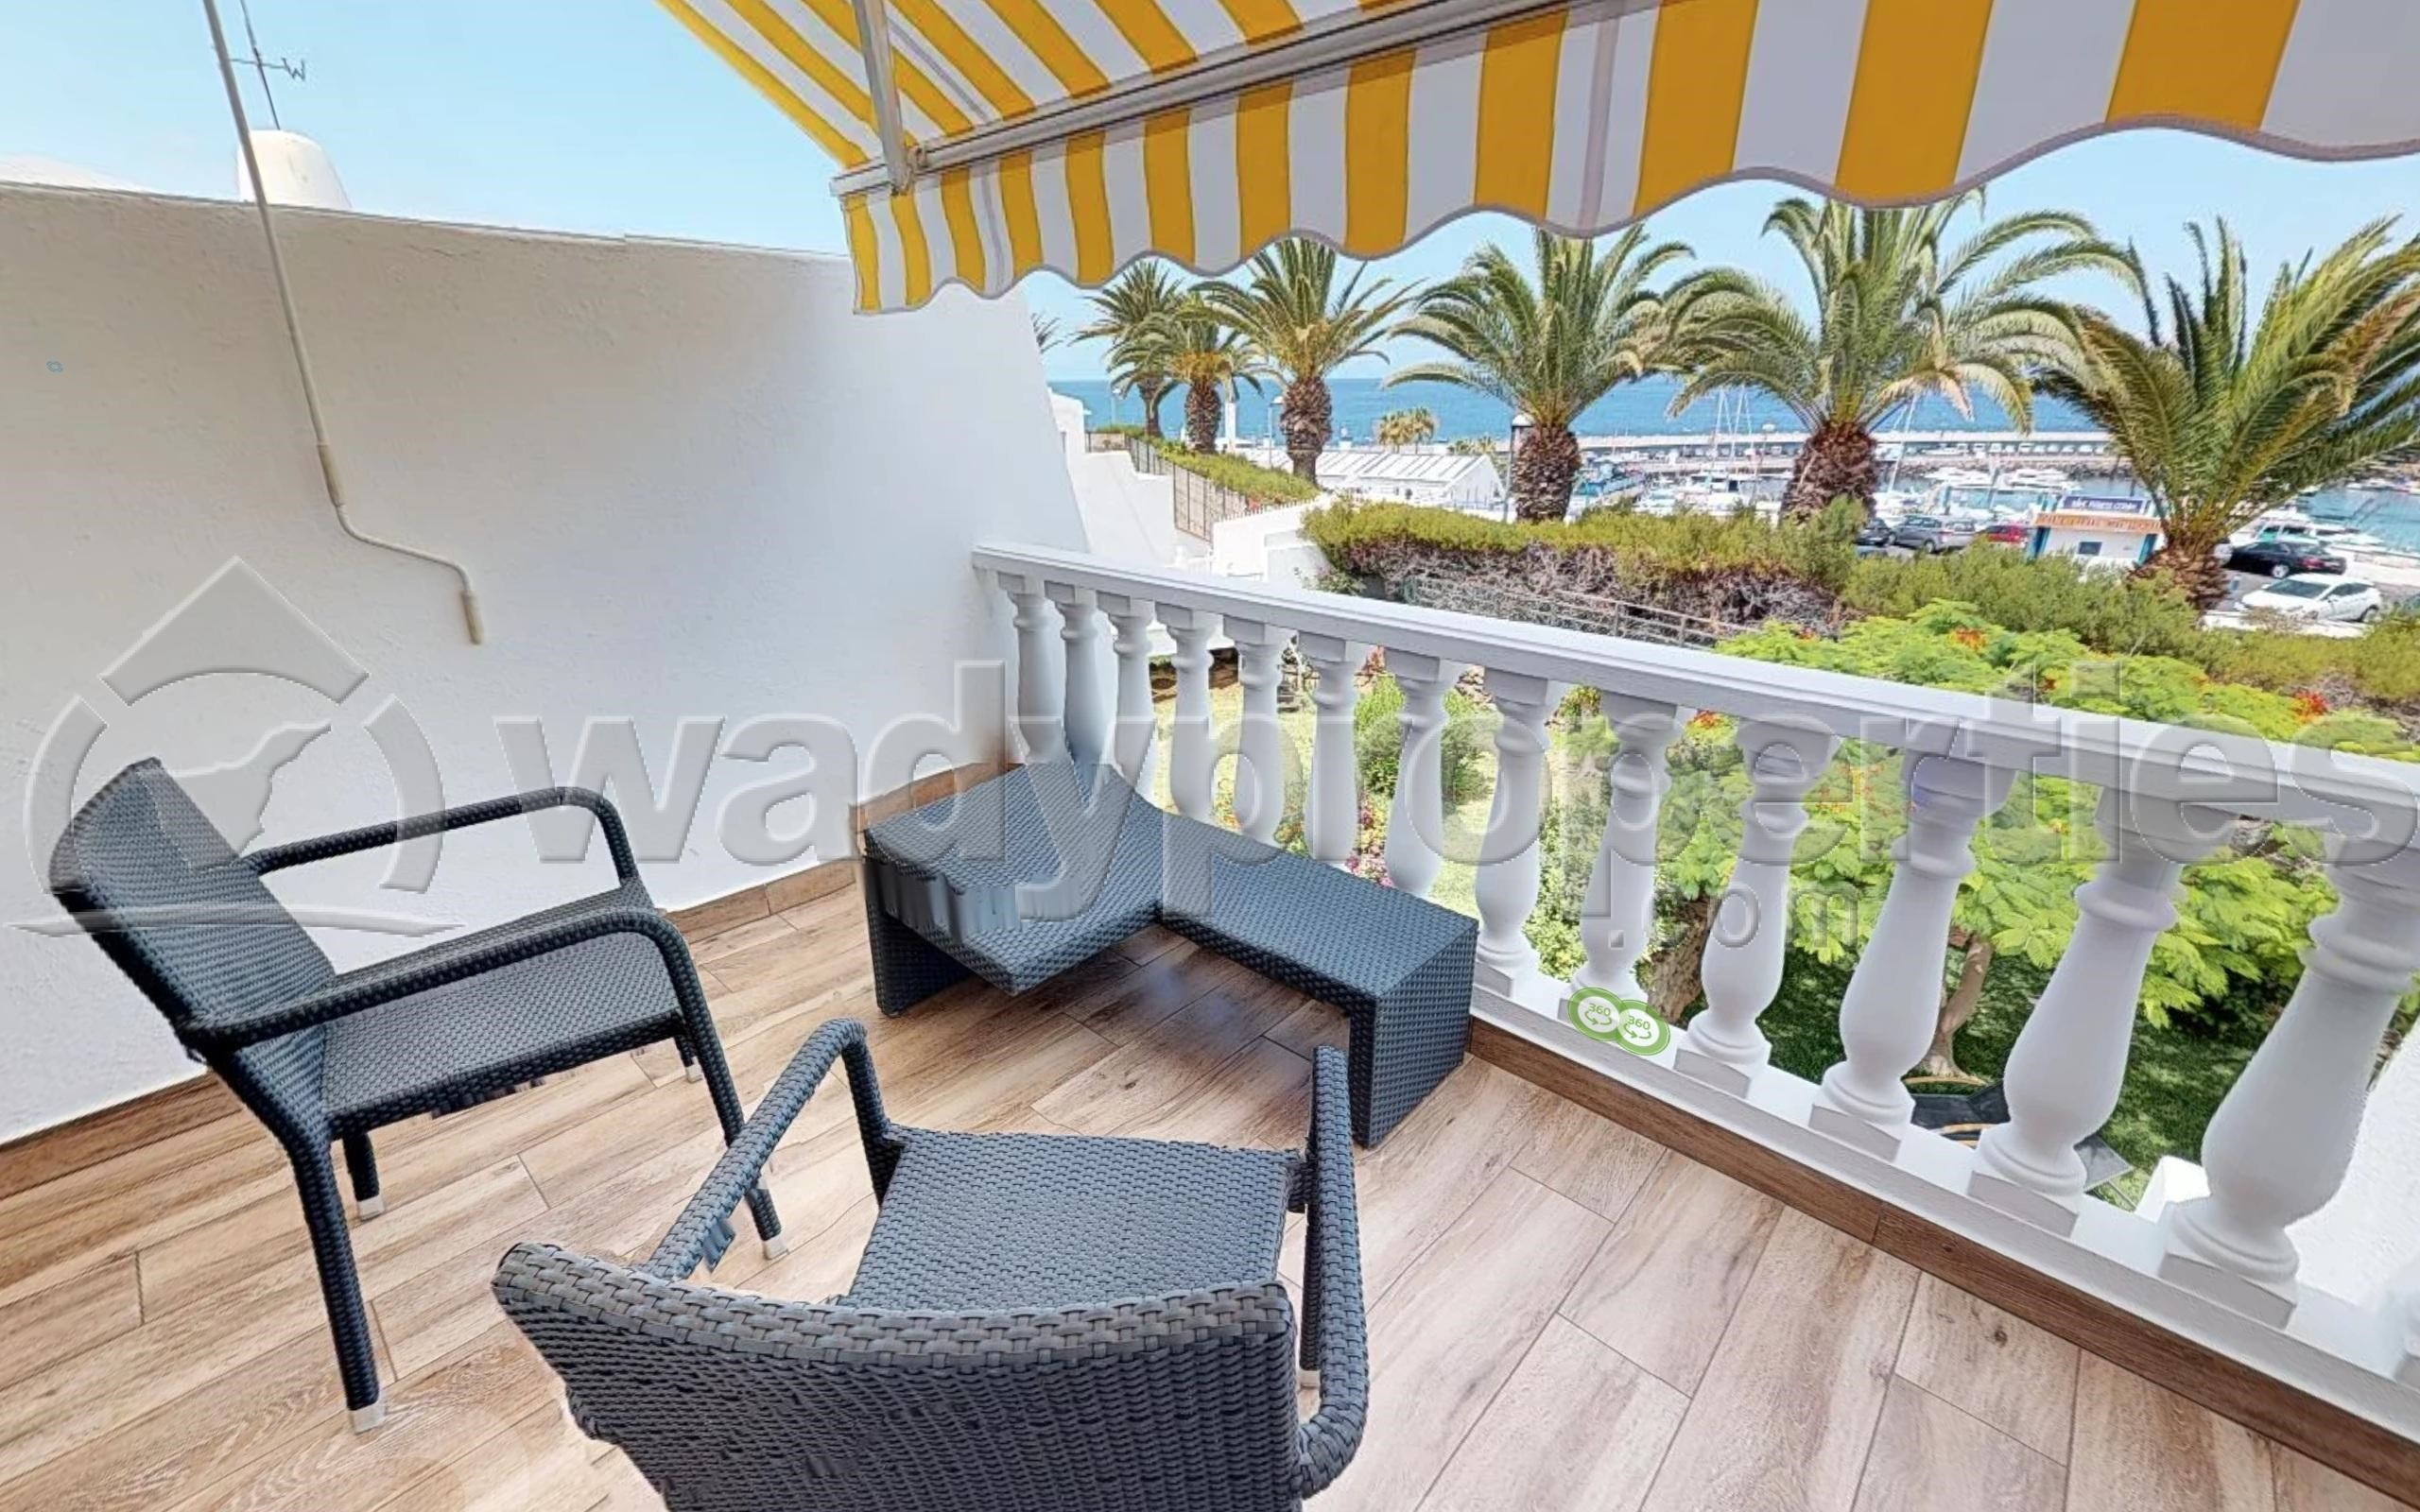 For sale in Puerto Colon, Tenerife